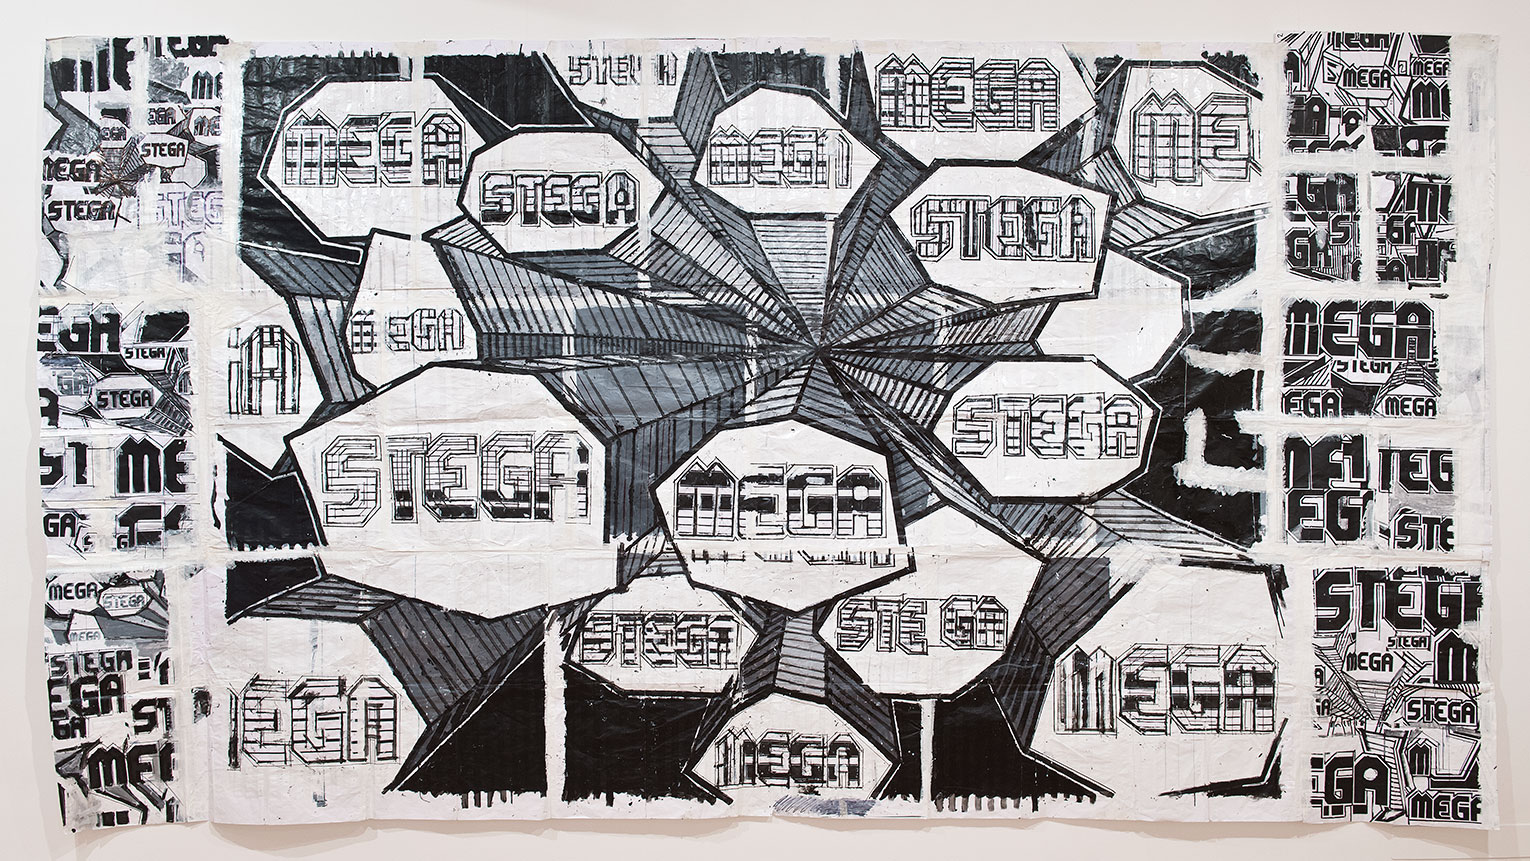 <b>Title: </b>Megastega<br /><b>Year: </b>2013<br /><b>Medium: </b>Drawing on paper<br /><b>Size: </b>260 x 450 cm